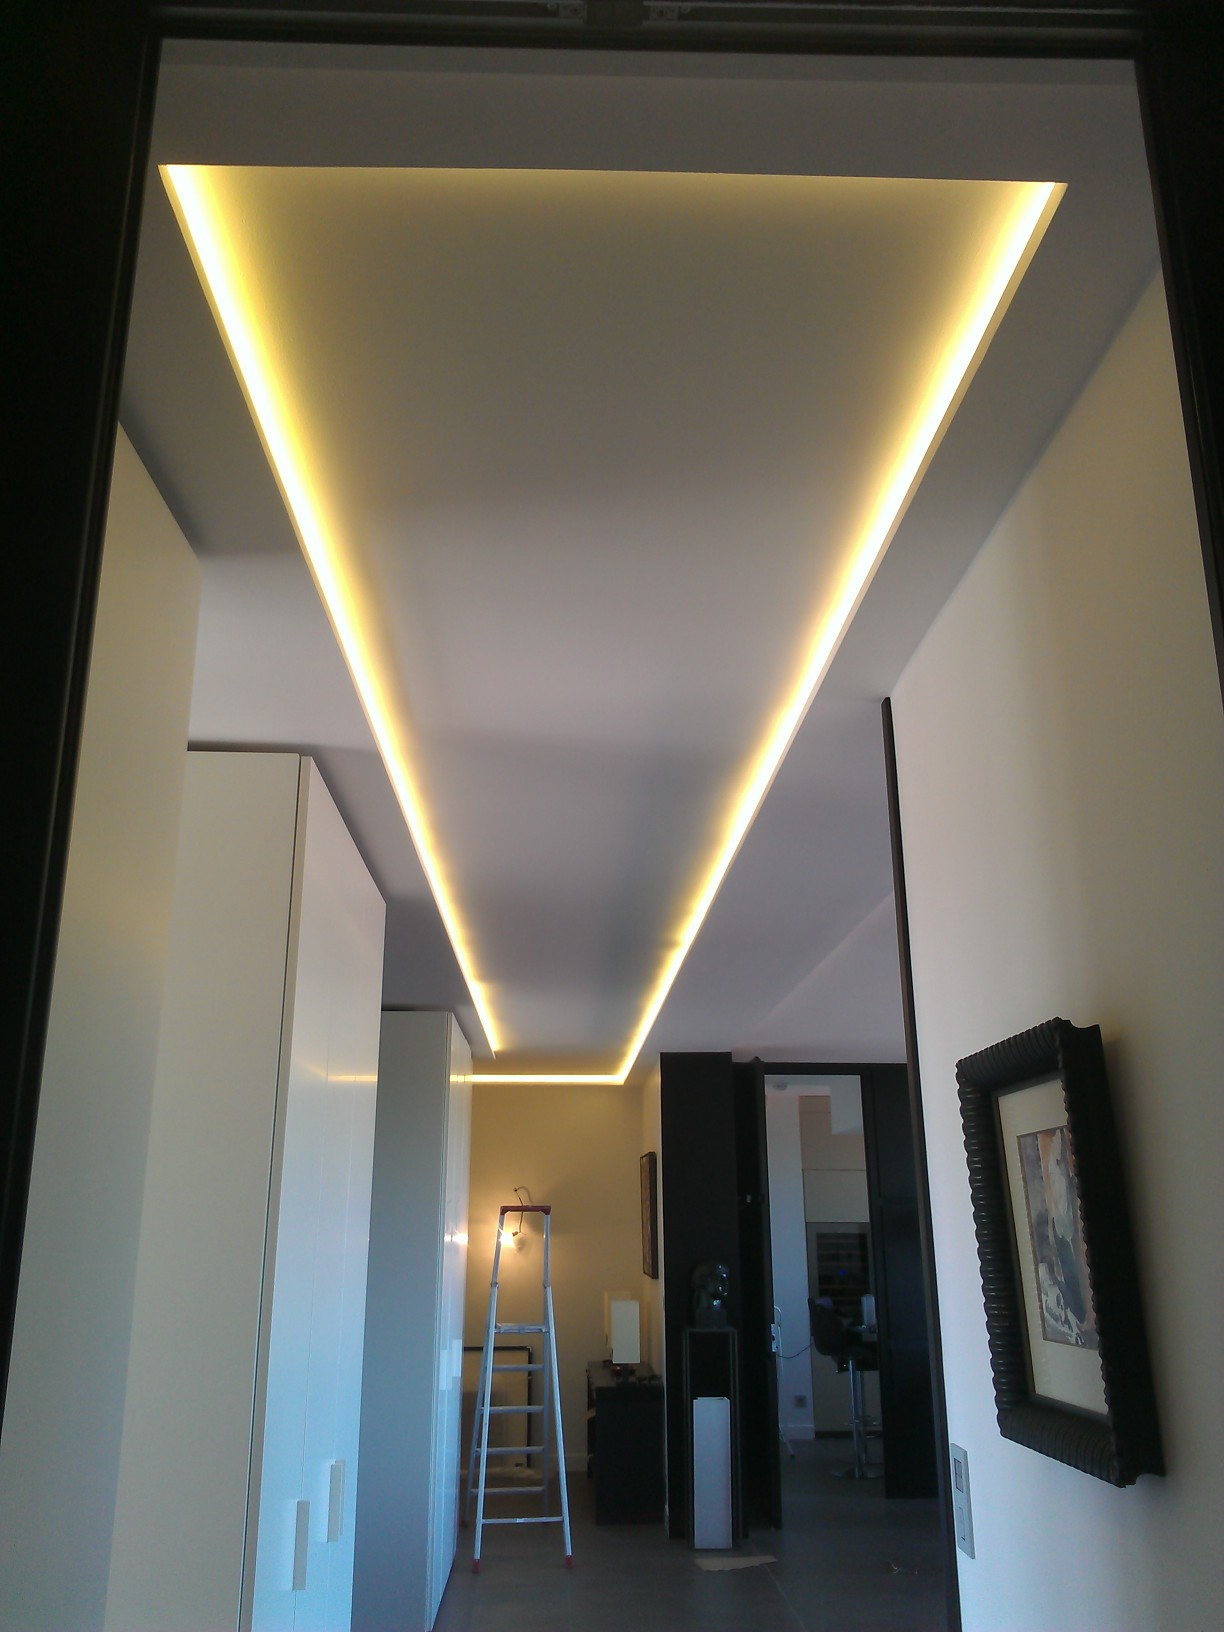 Eclairage led interieur plafond 2 wp 000351 jpg